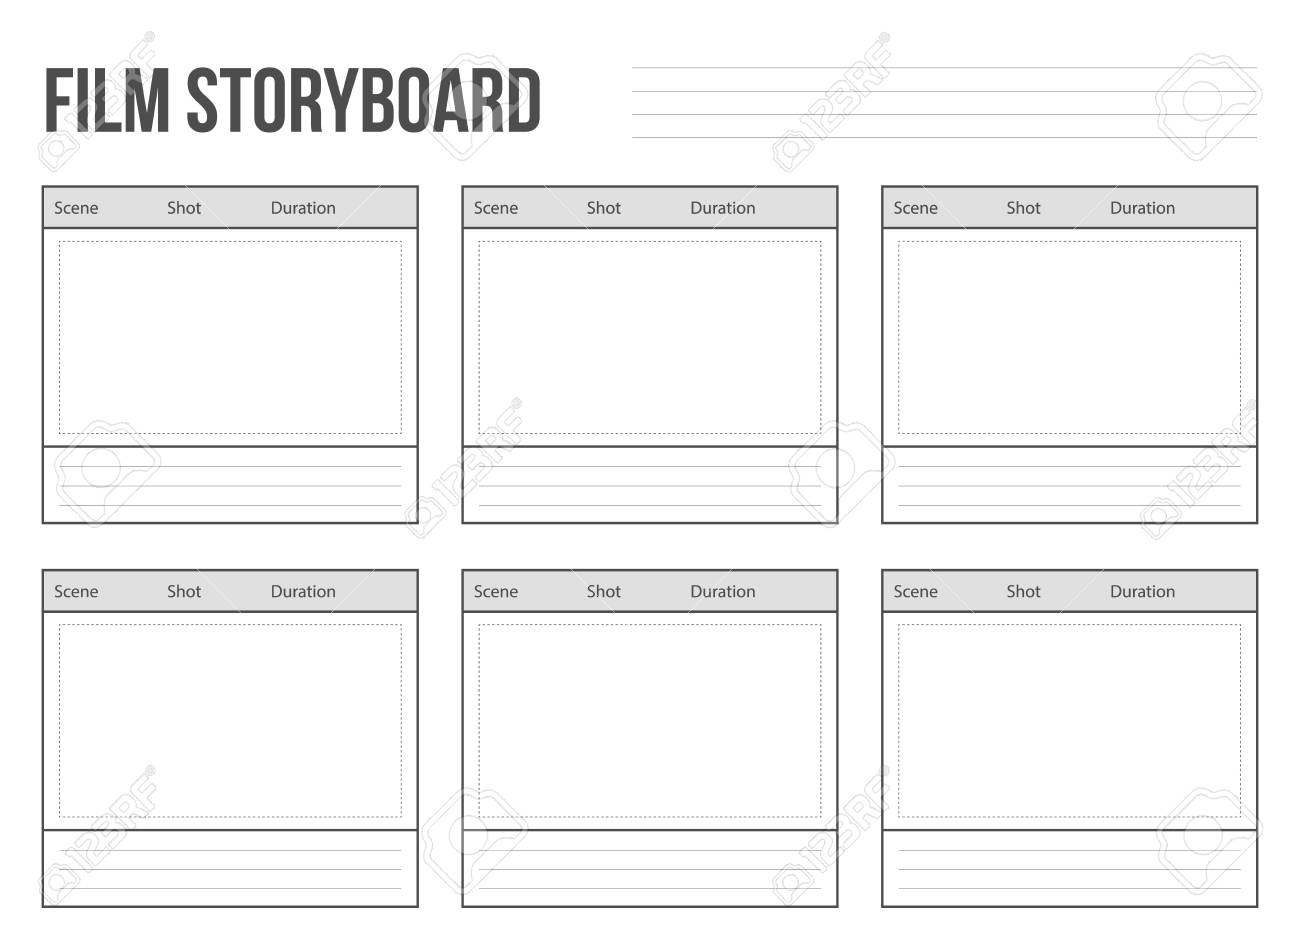 Creative vector illustration of professional film storyboard mockup isolated on transparent background. Art design movie story board layout template. Abstract concept graphic shot and scene element - 95952923